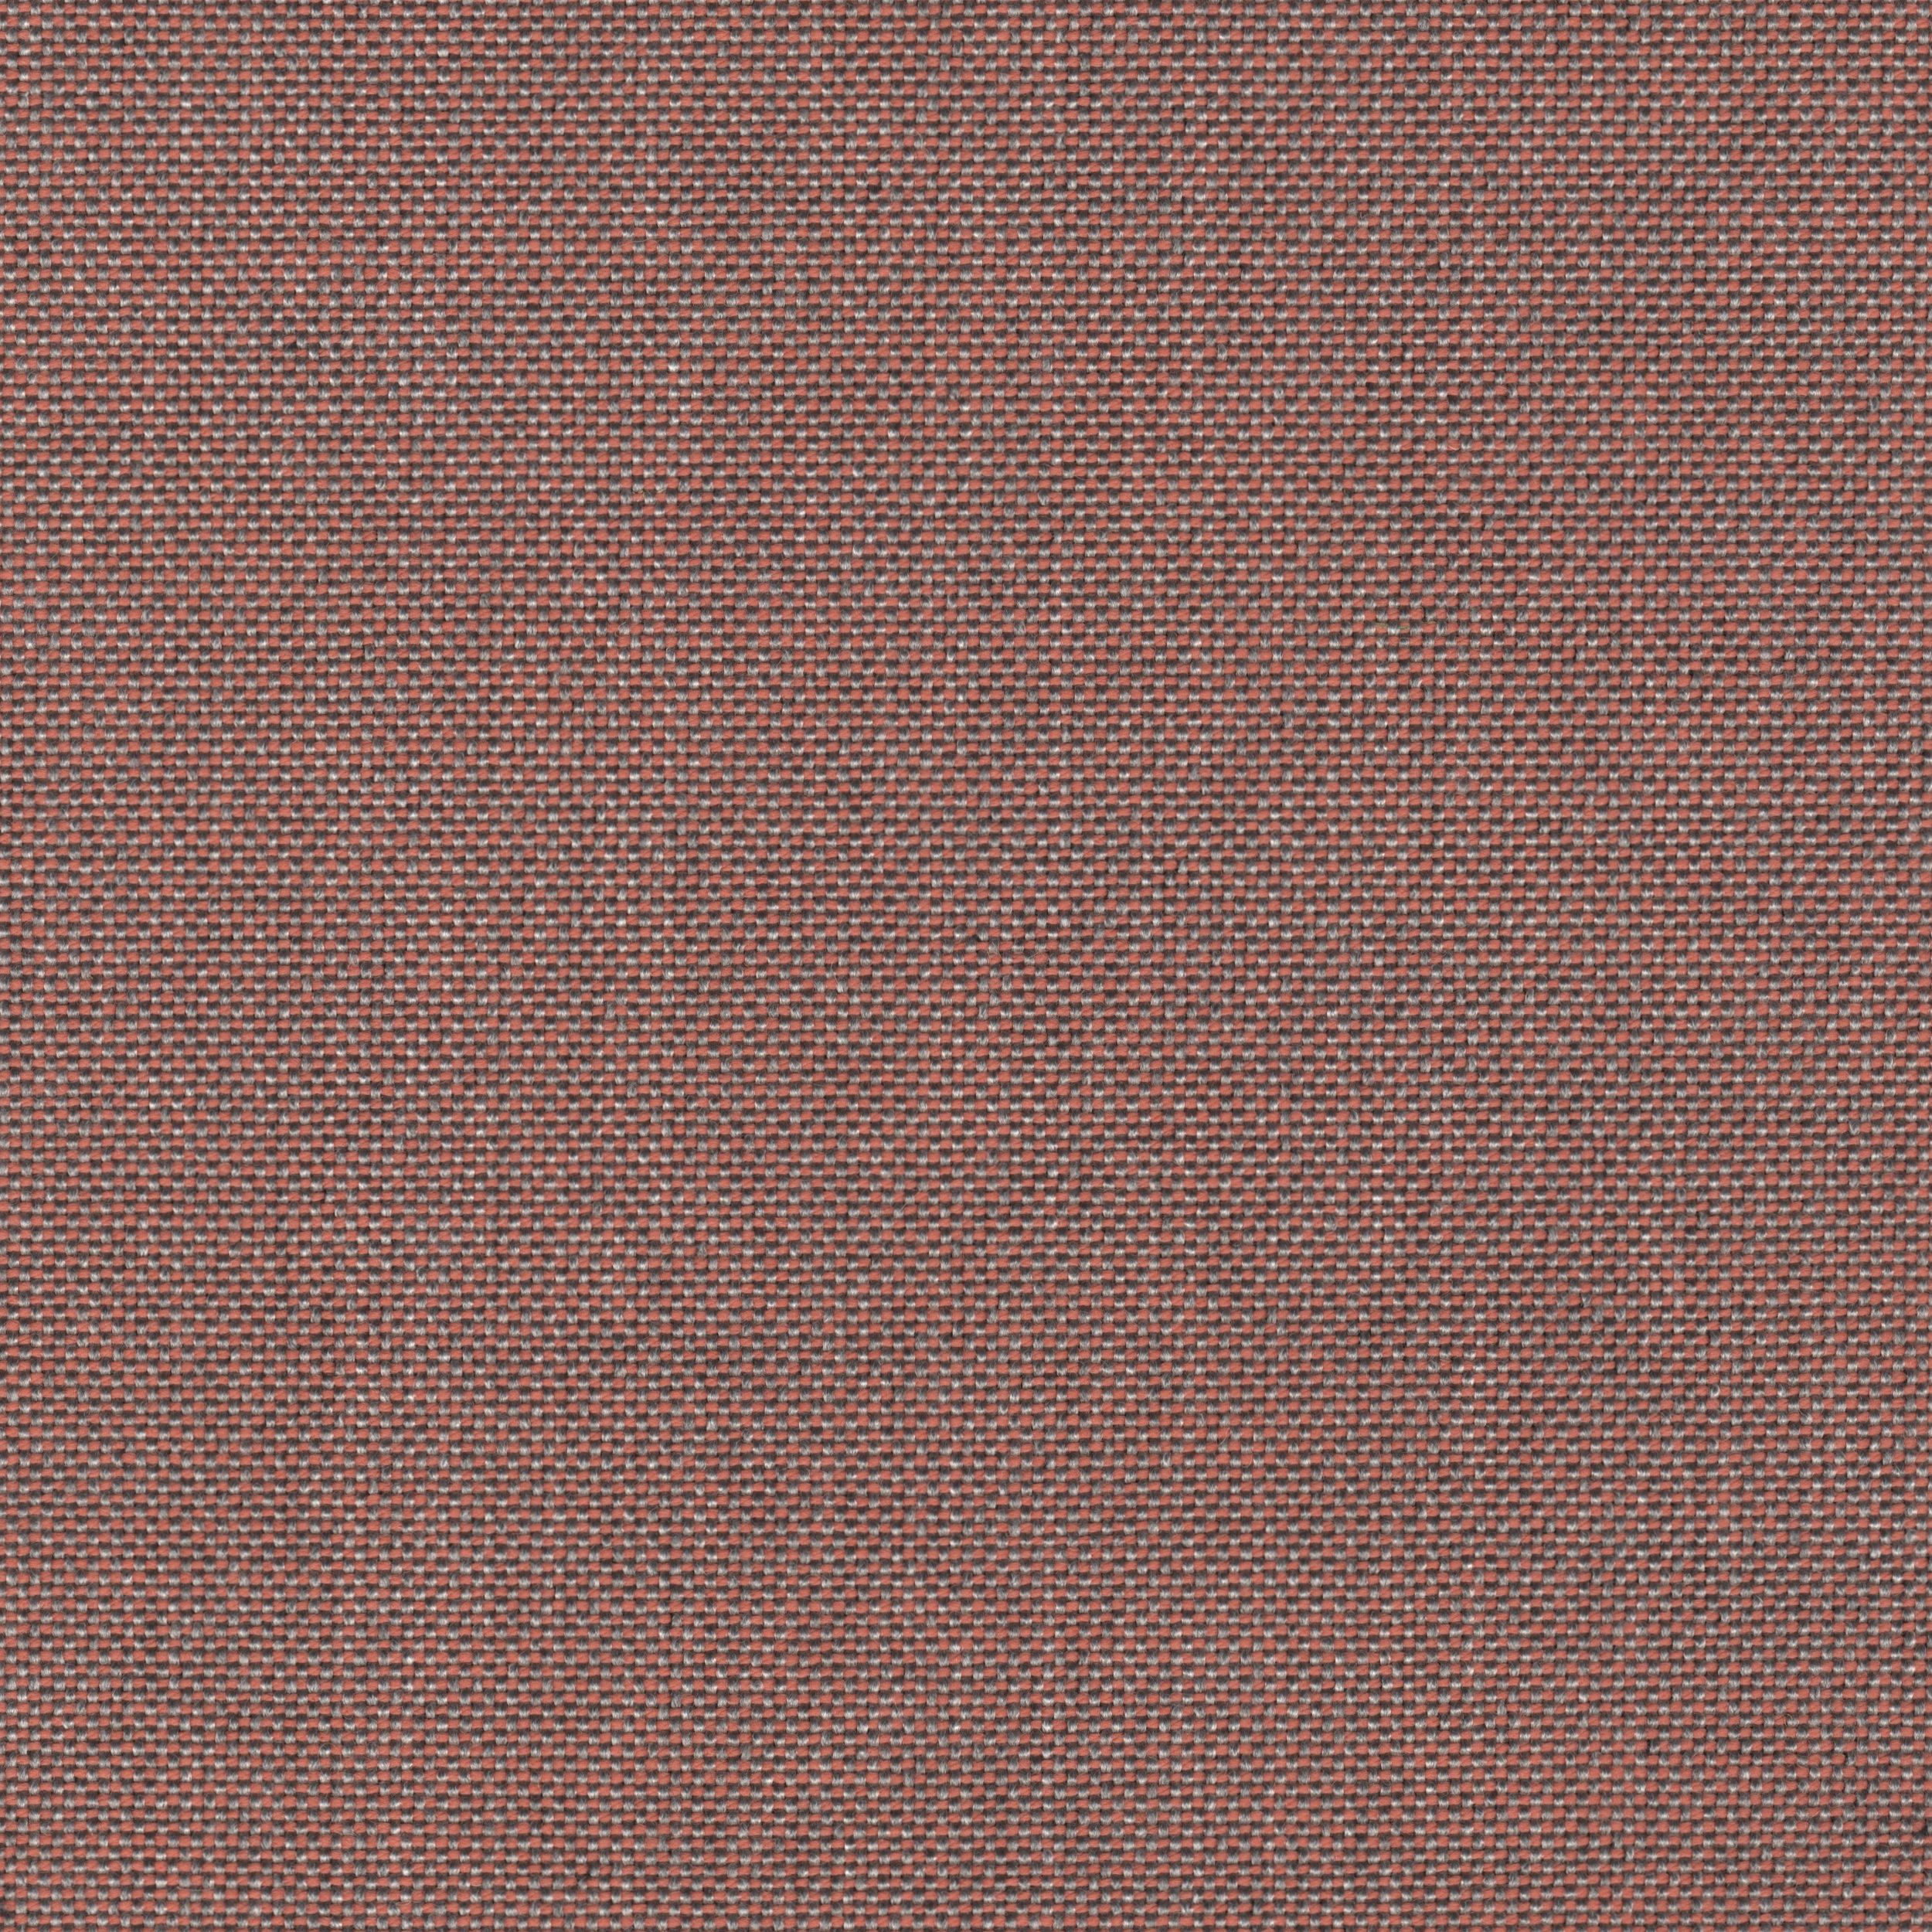 FUSION is a plain weave that blends wool with performance fiber, equipping elegance with an outspoken technical performance. The colour range ventures lively but elegant tones, adding a calm, homely feel to the sometimes cool, technocratic world of contract. FUSION is inherently flame retardant and machine-washable.